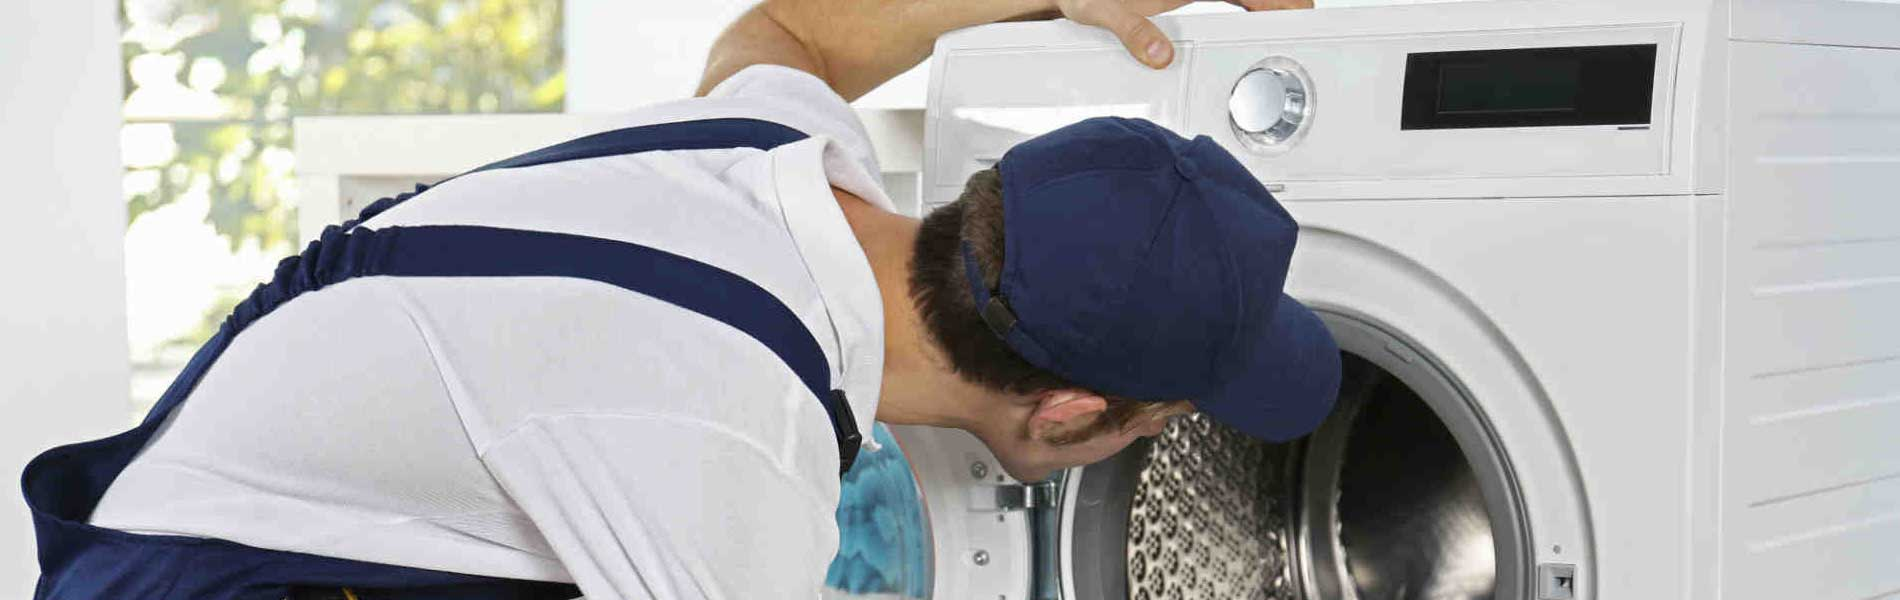 LG Washing Machine Repair in Nanganallur